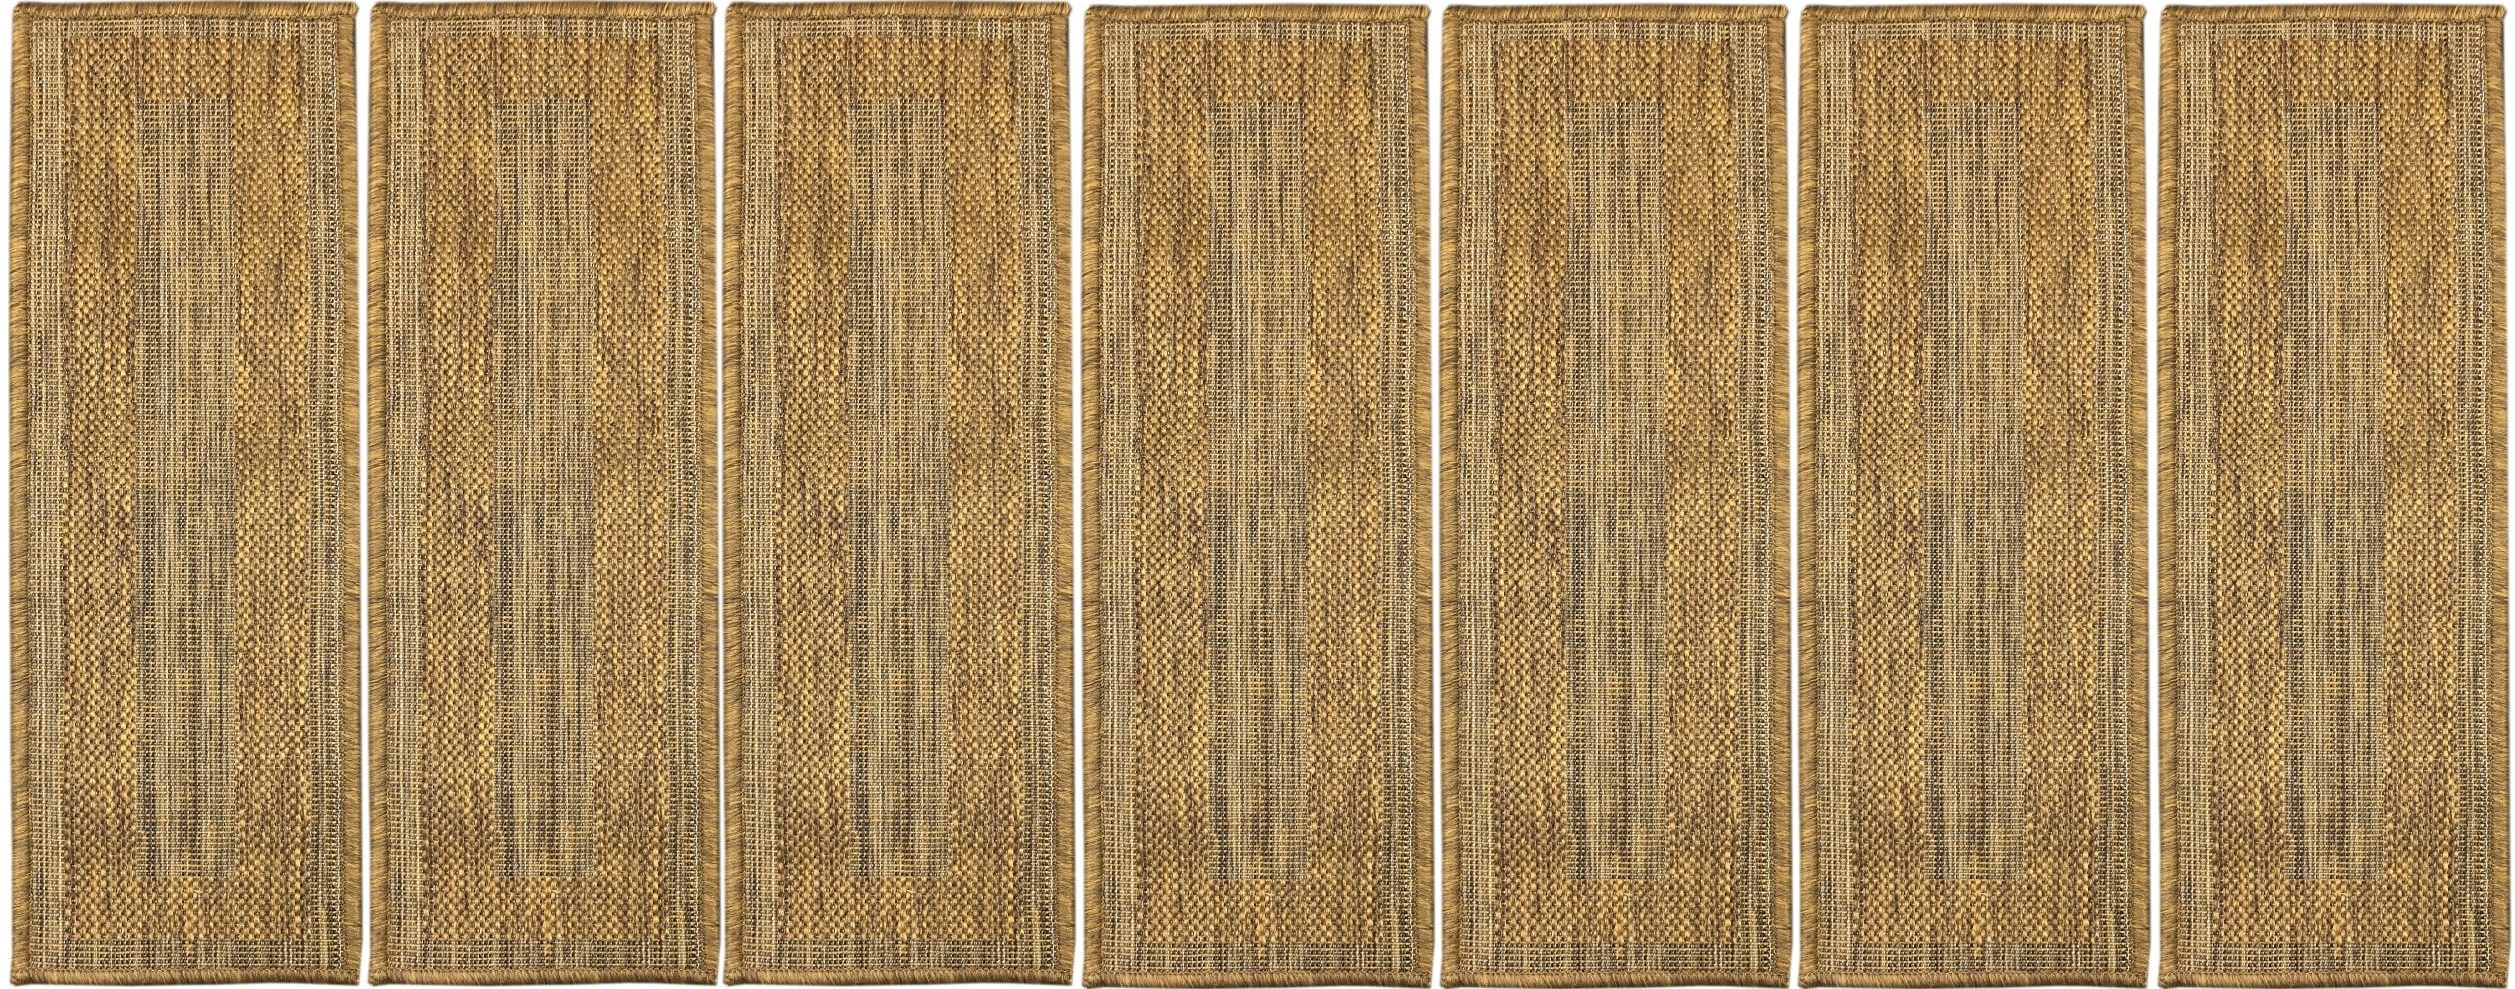 Shop Ottomanson Jardin Collection Jute Back Indoor Outdoor 9 Inch | Indoor Outdoor Carpet For Stairs | Slip Resistant Rubber Backing | Interior | Electric Blue | Stair Residential | Diamond Pattern